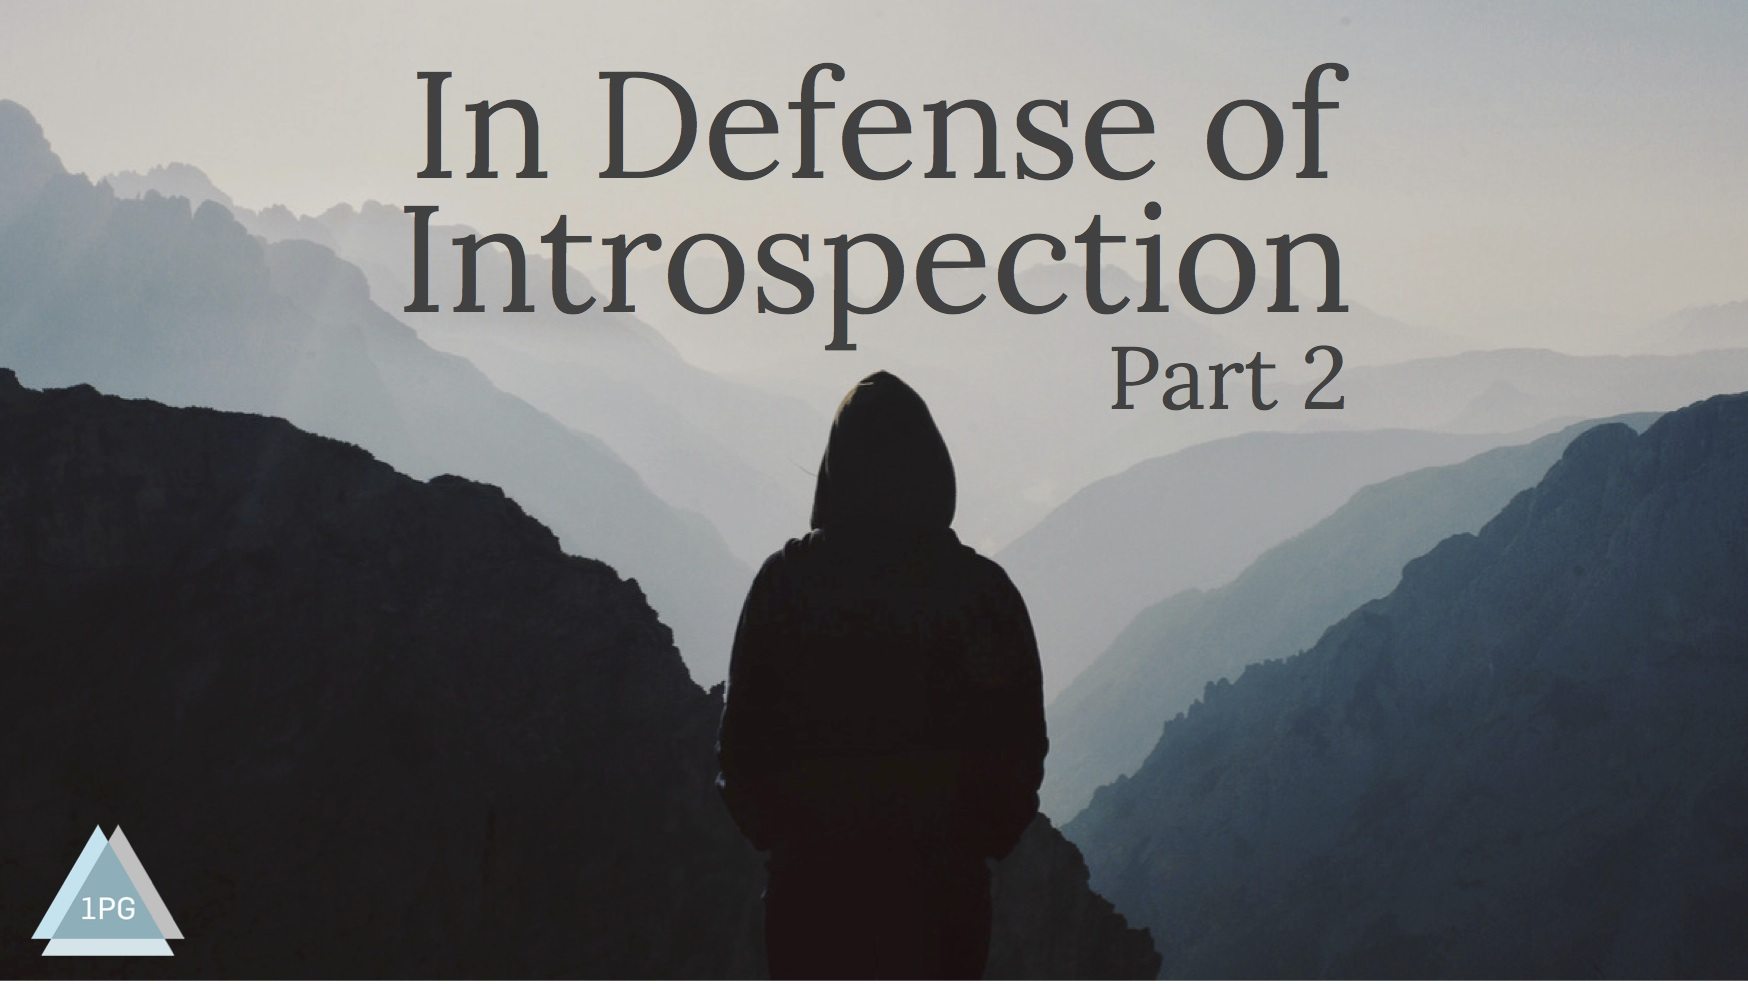 In Defense of Introspection